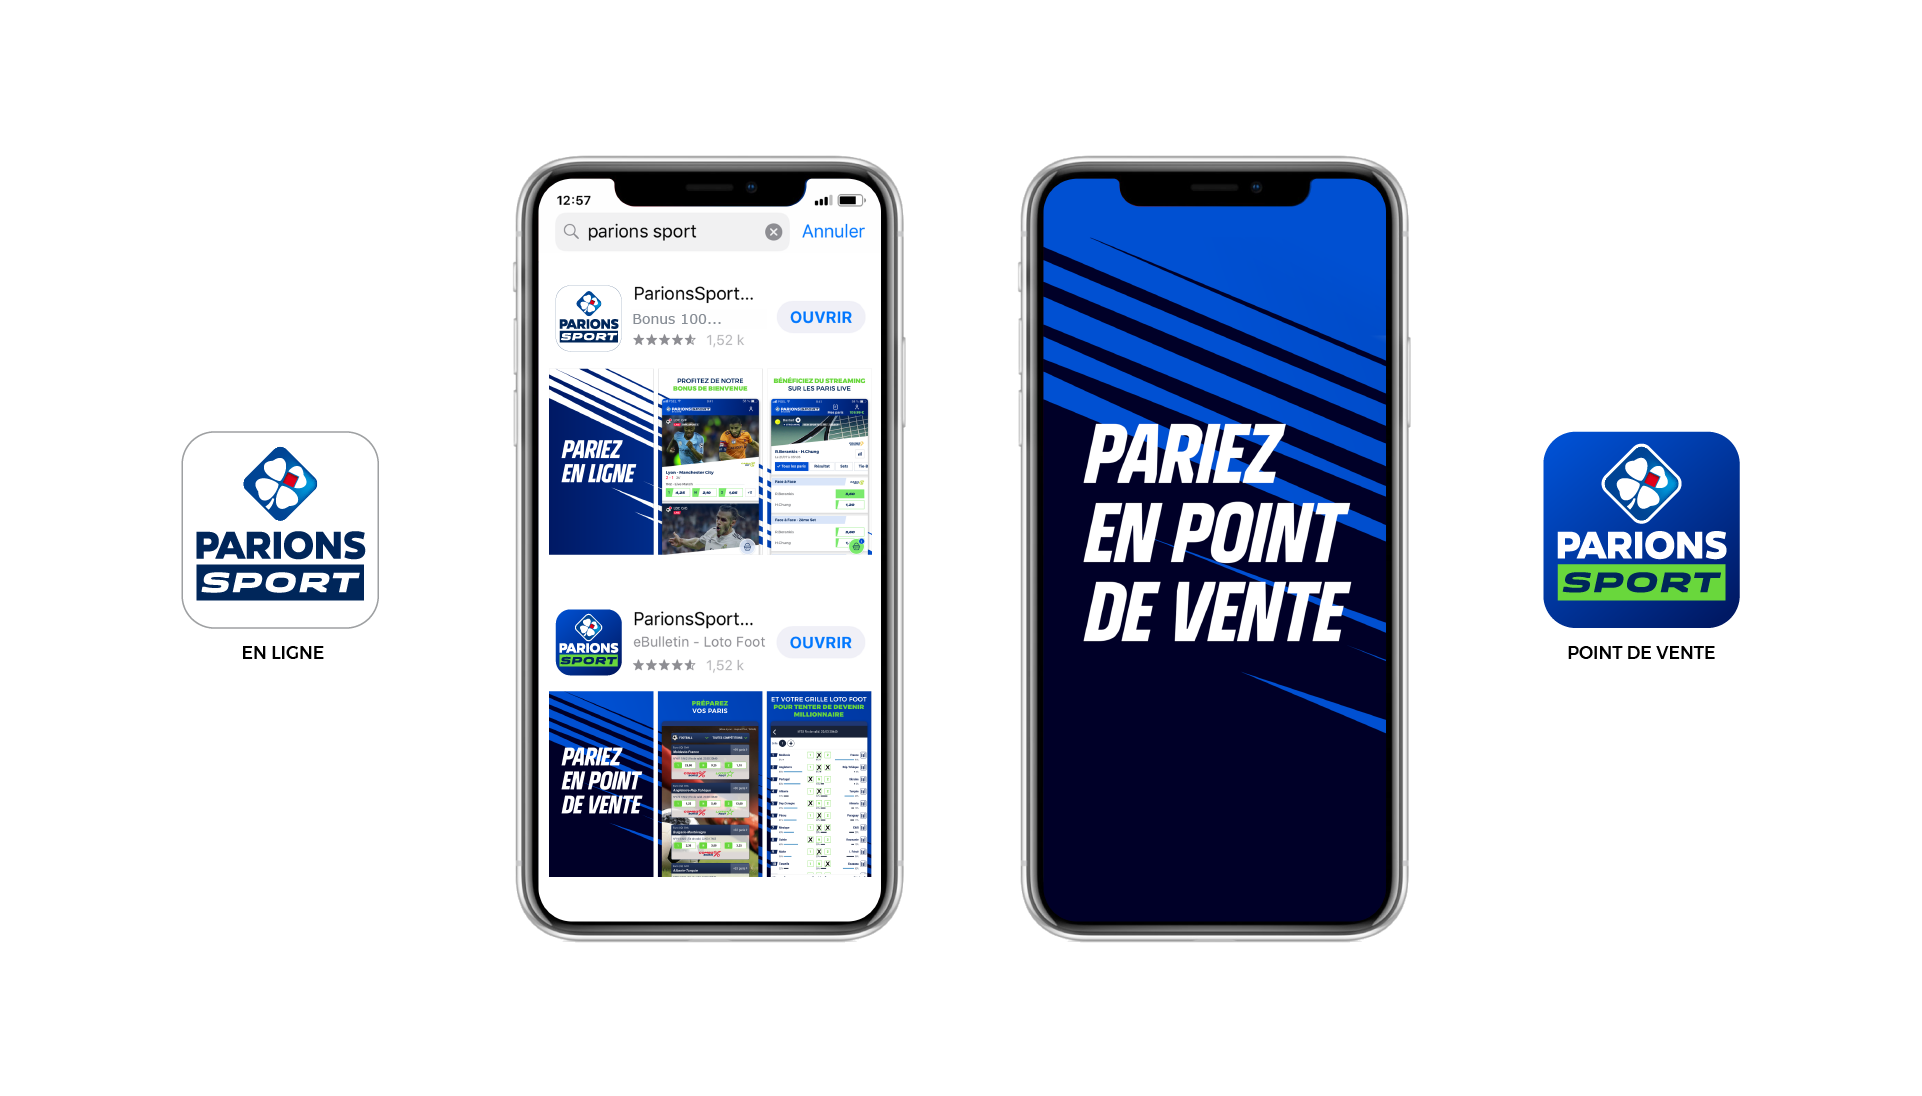 Application mobile Parions sport point de vente et parions sport en ligne